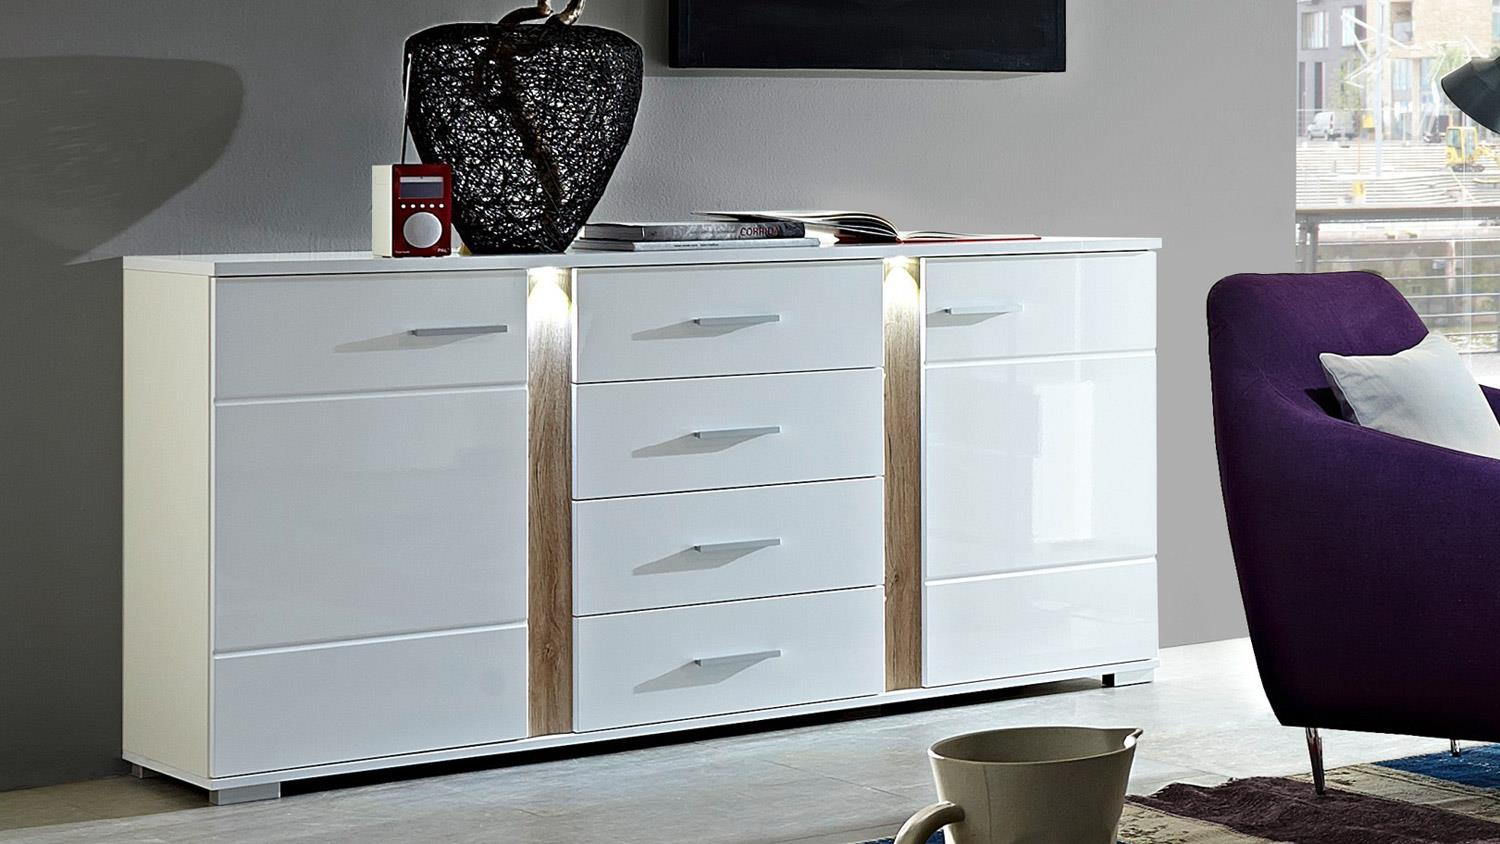 sideboard malibu anrichte in mdf wei hochglanz inkl led beleuchtung. Black Bedroom Furniture Sets. Home Design Ideas